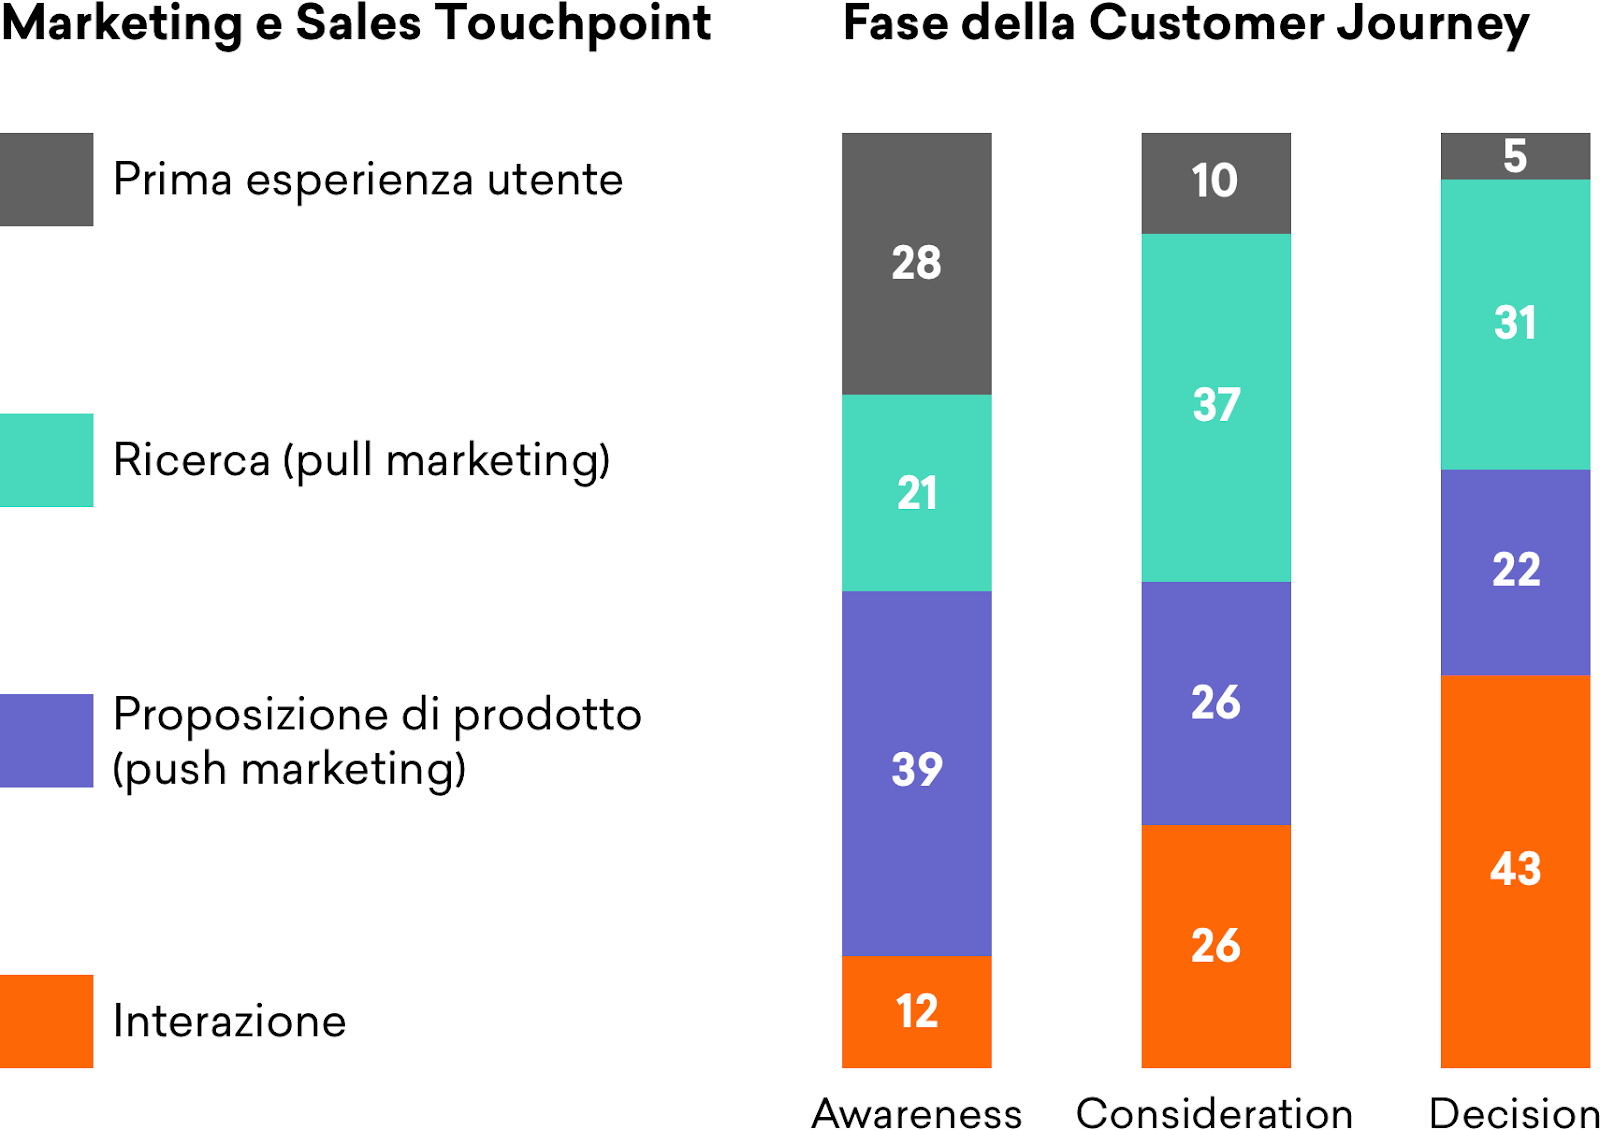 Marketing e sales touchpoint